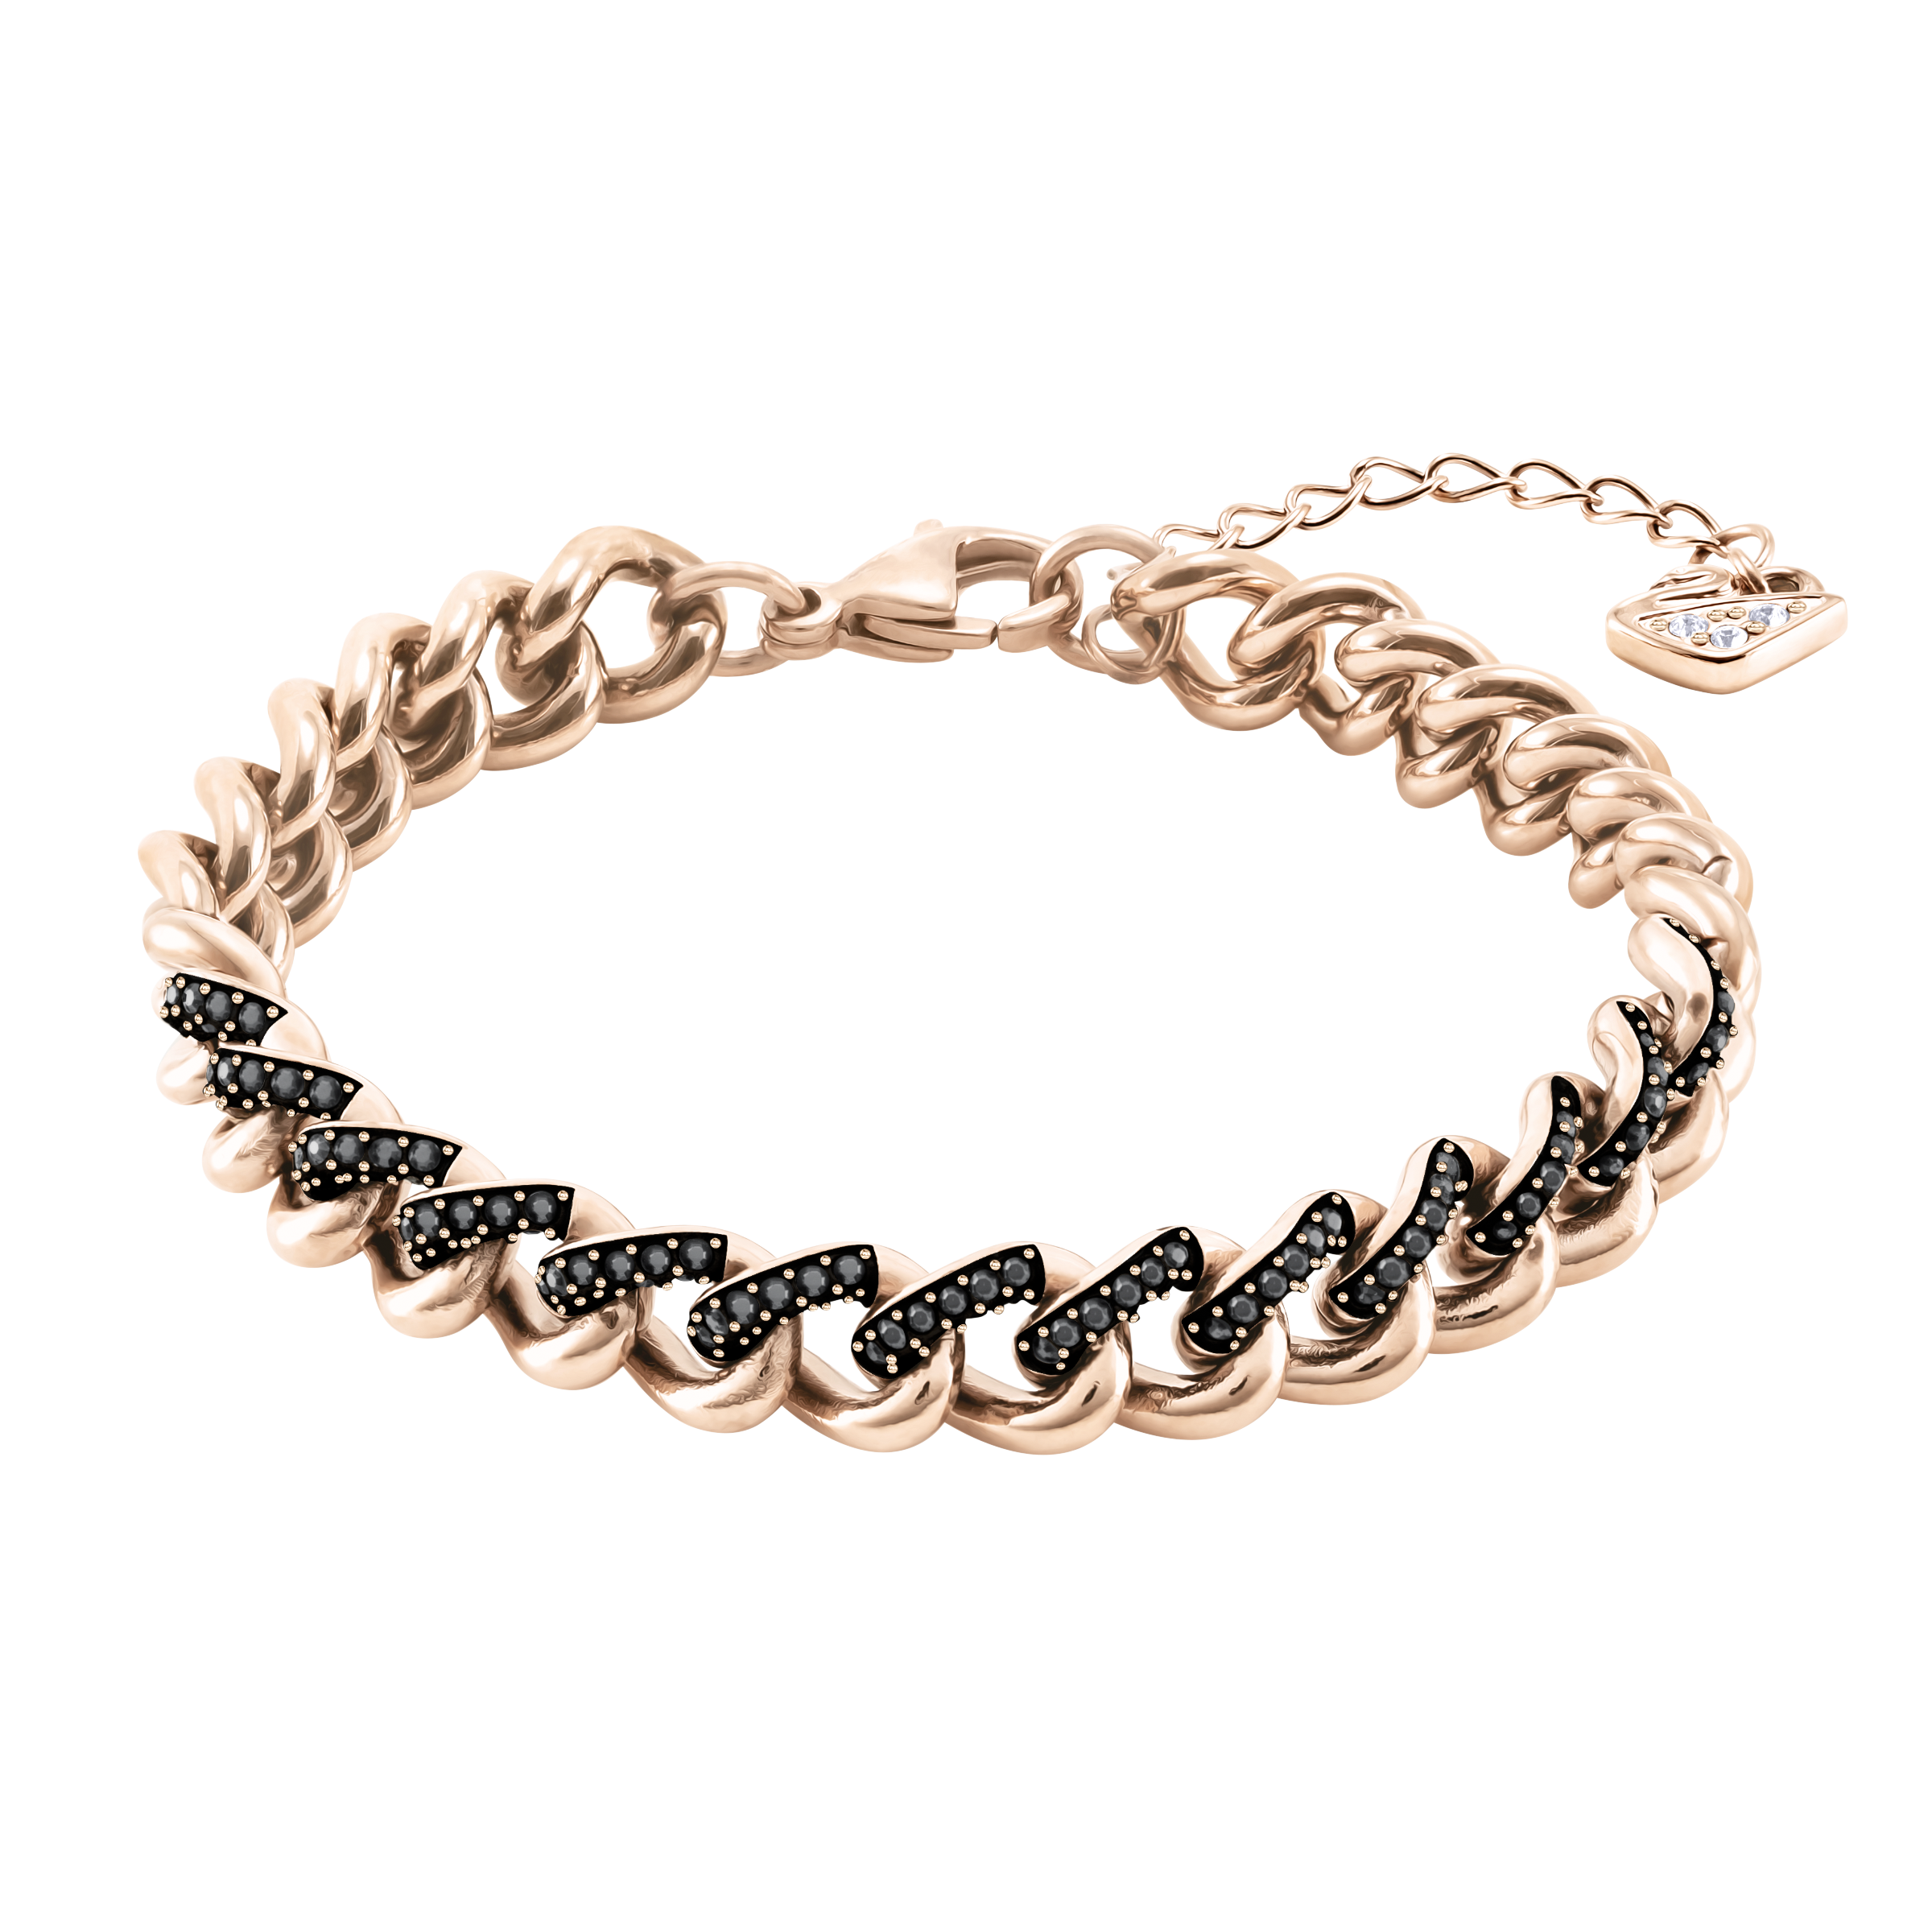 Lane Bracelet, Black, Rose-gold tone plated